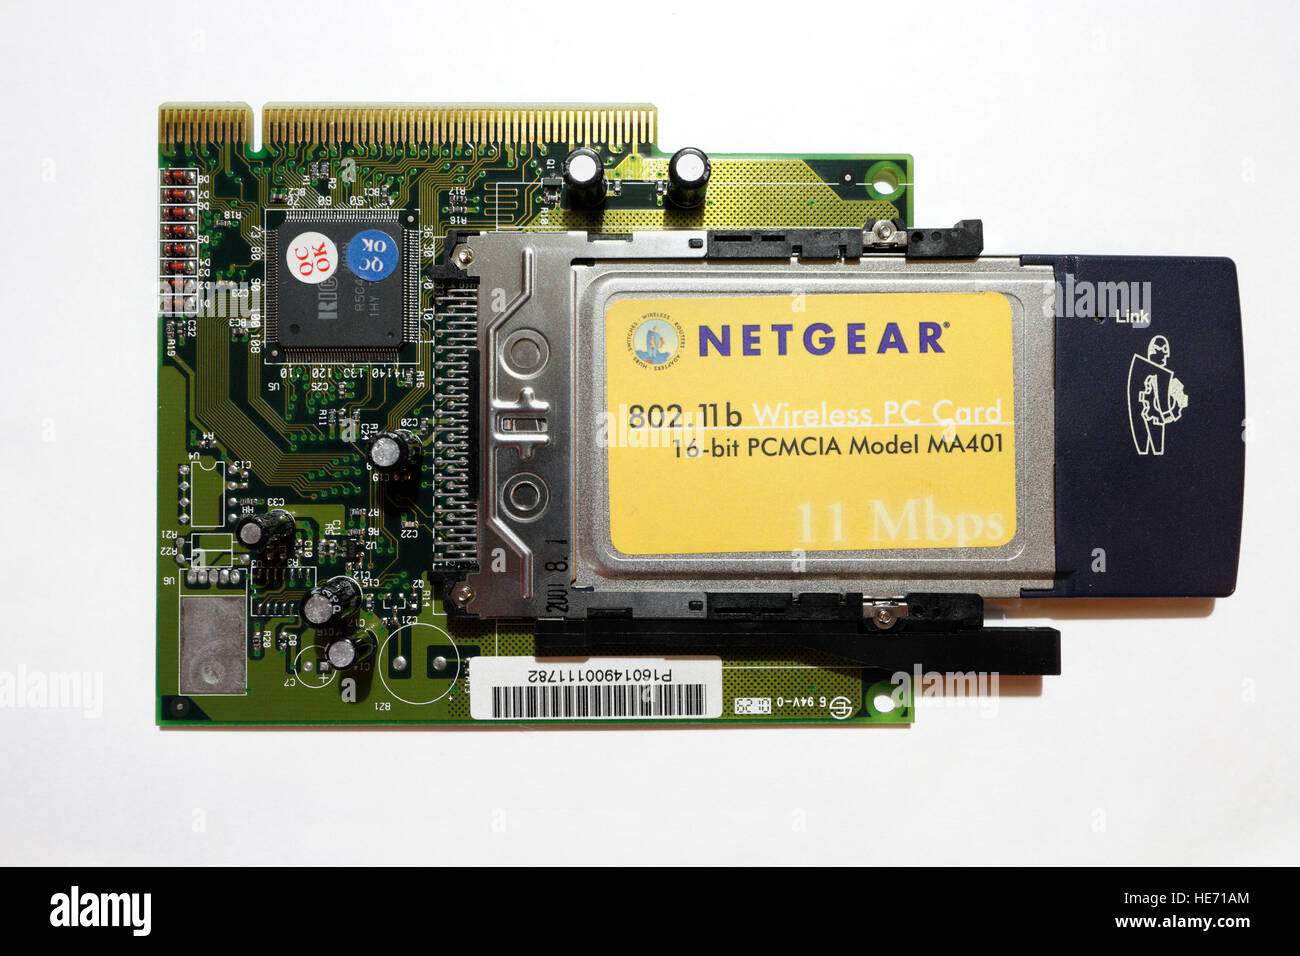 Netgear PCMCIA wifi adapter Stock Photo: 129232508 - Alamy